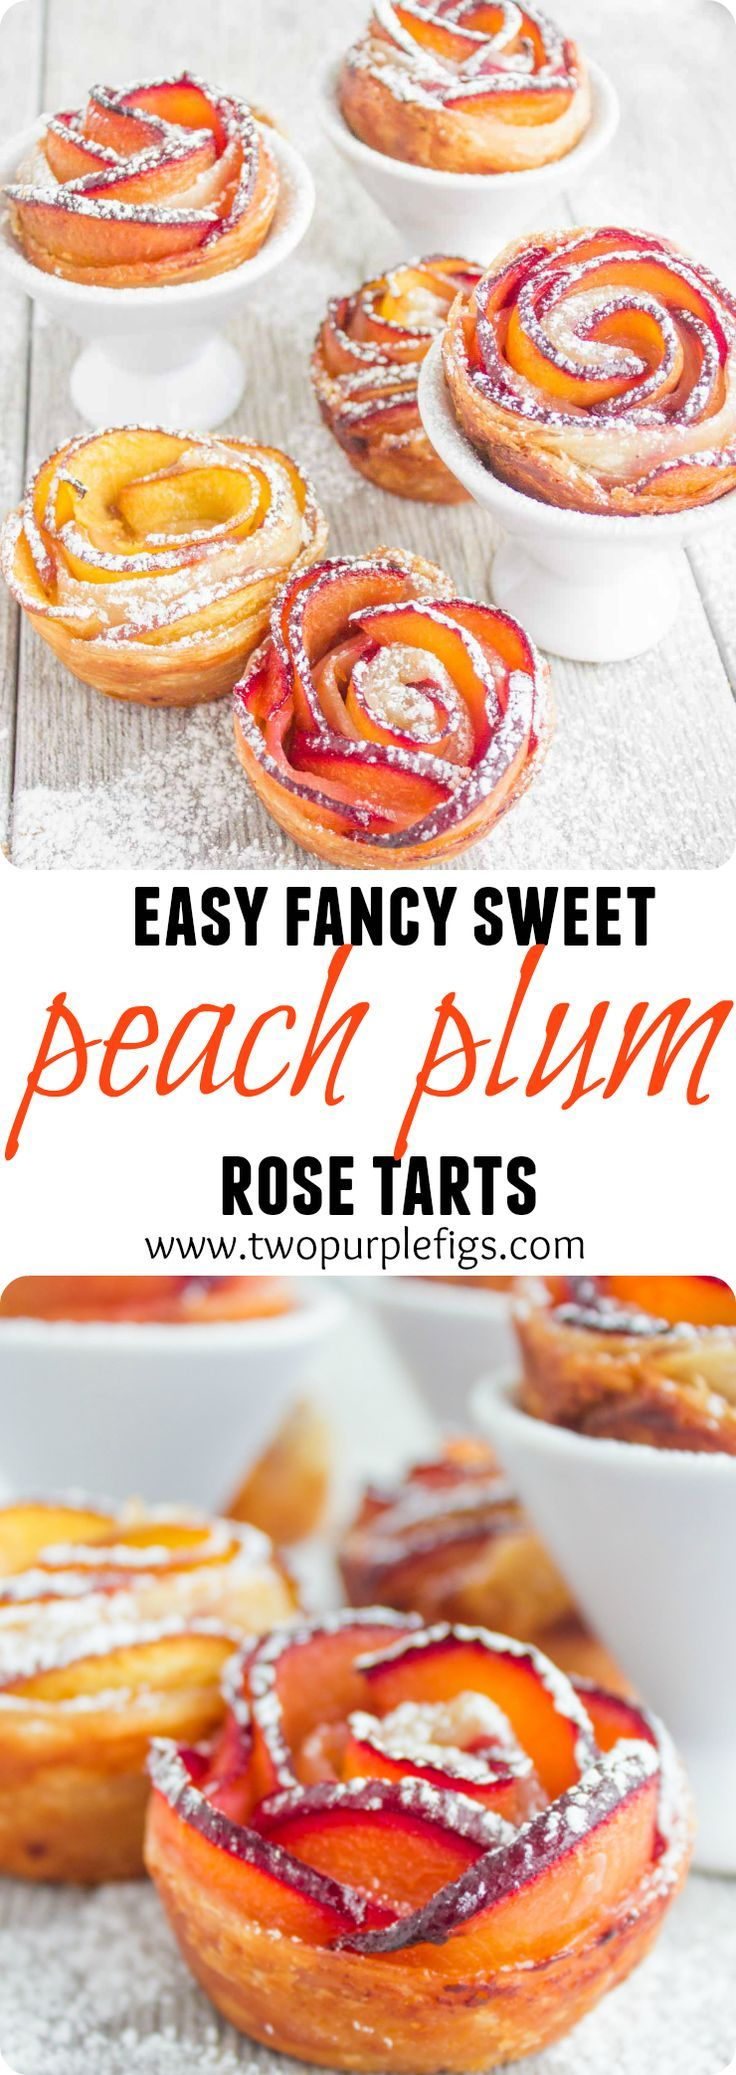 Peach Plum Rose Tarts. They look like they came from a fancy bakery while in fact they are SHAMEFULLY easy to make at home! Check the recipe with step by step photos, tricks and tips to make this 5 star crowd pleaser dessert! www.twopurplefigs.com